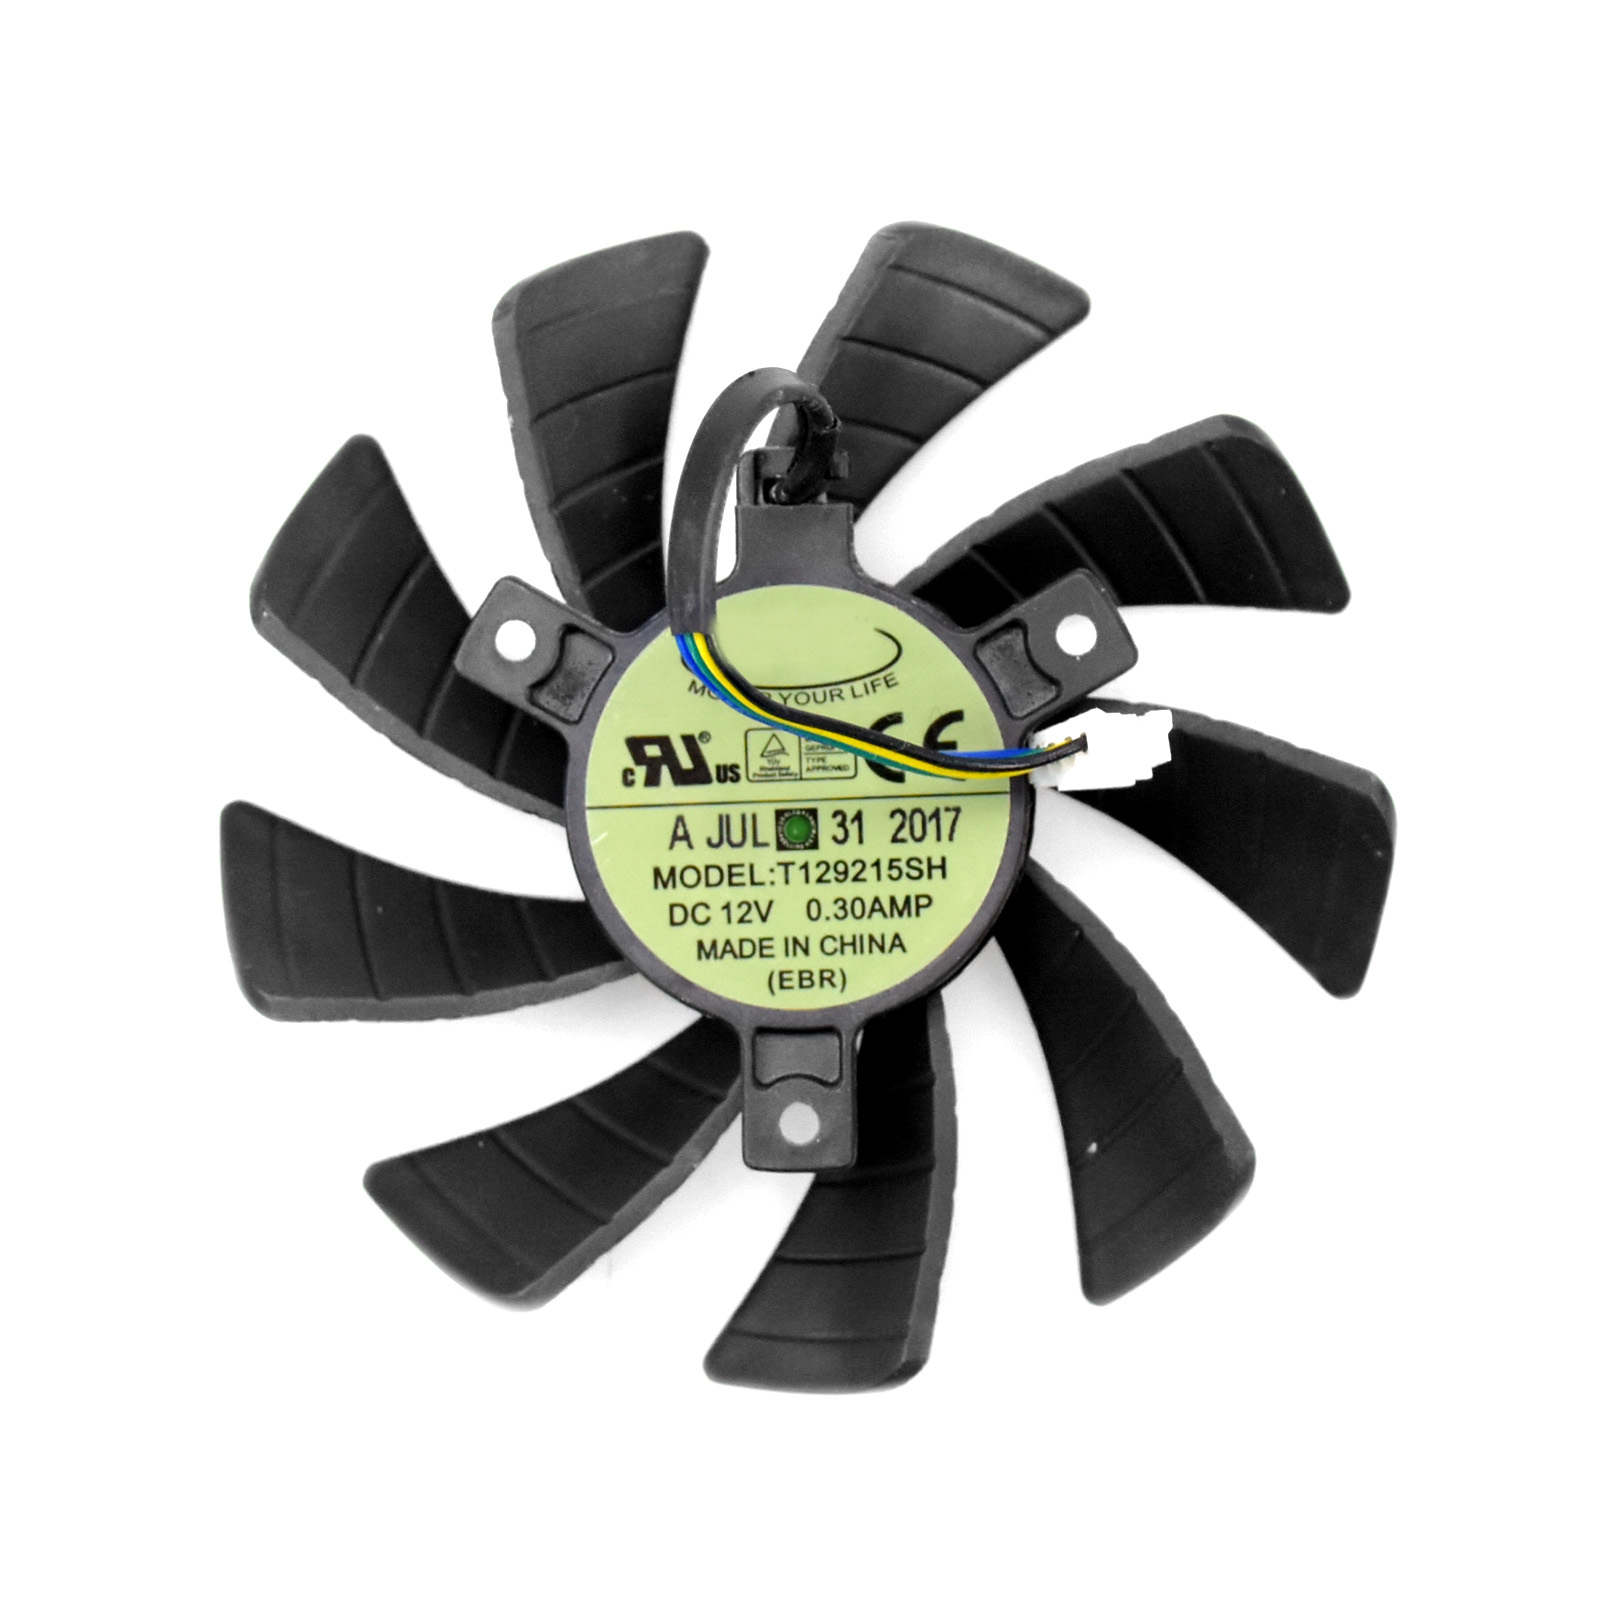 For ZOTAC <font><b>GTX</b></font> 950 <font><b>960</b></font> 1060 Mini ITX P106-090 Graphics Card Cooling <font><b>Fan</b></font> T129215SH image